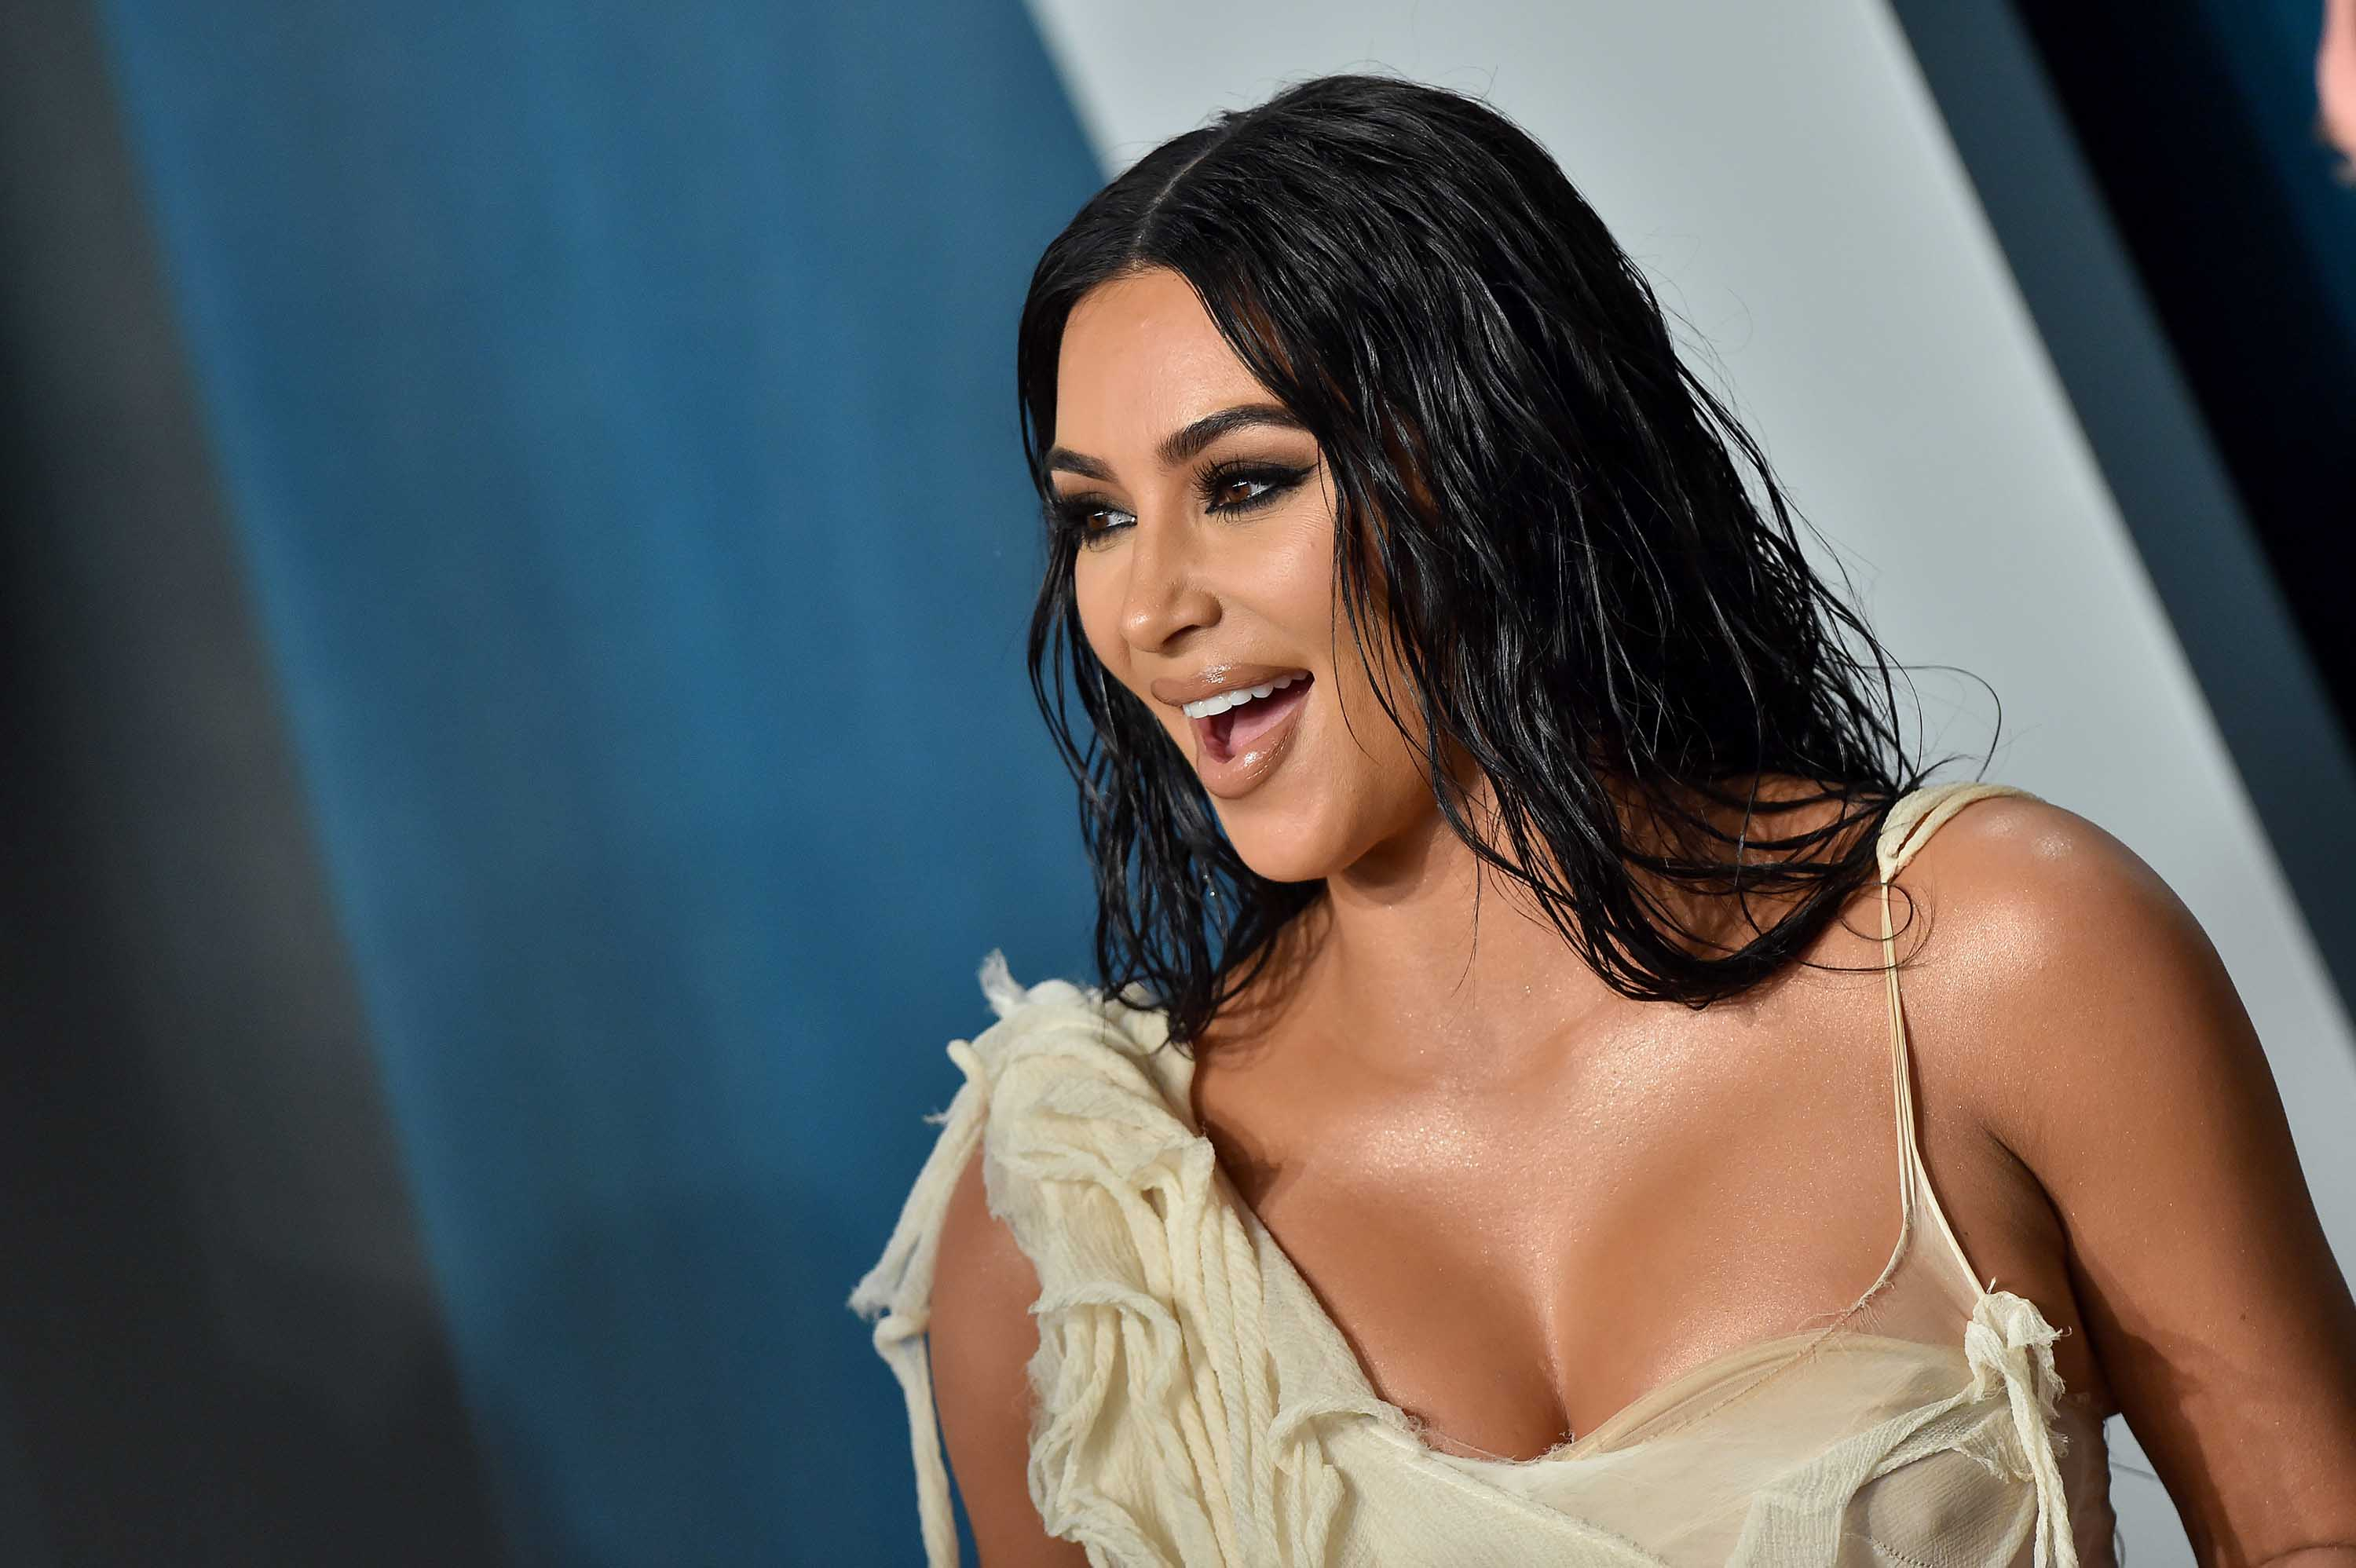 Kim Kardashian reassures fans new show will launch when 'Keeping Up With The Kardashians' ends